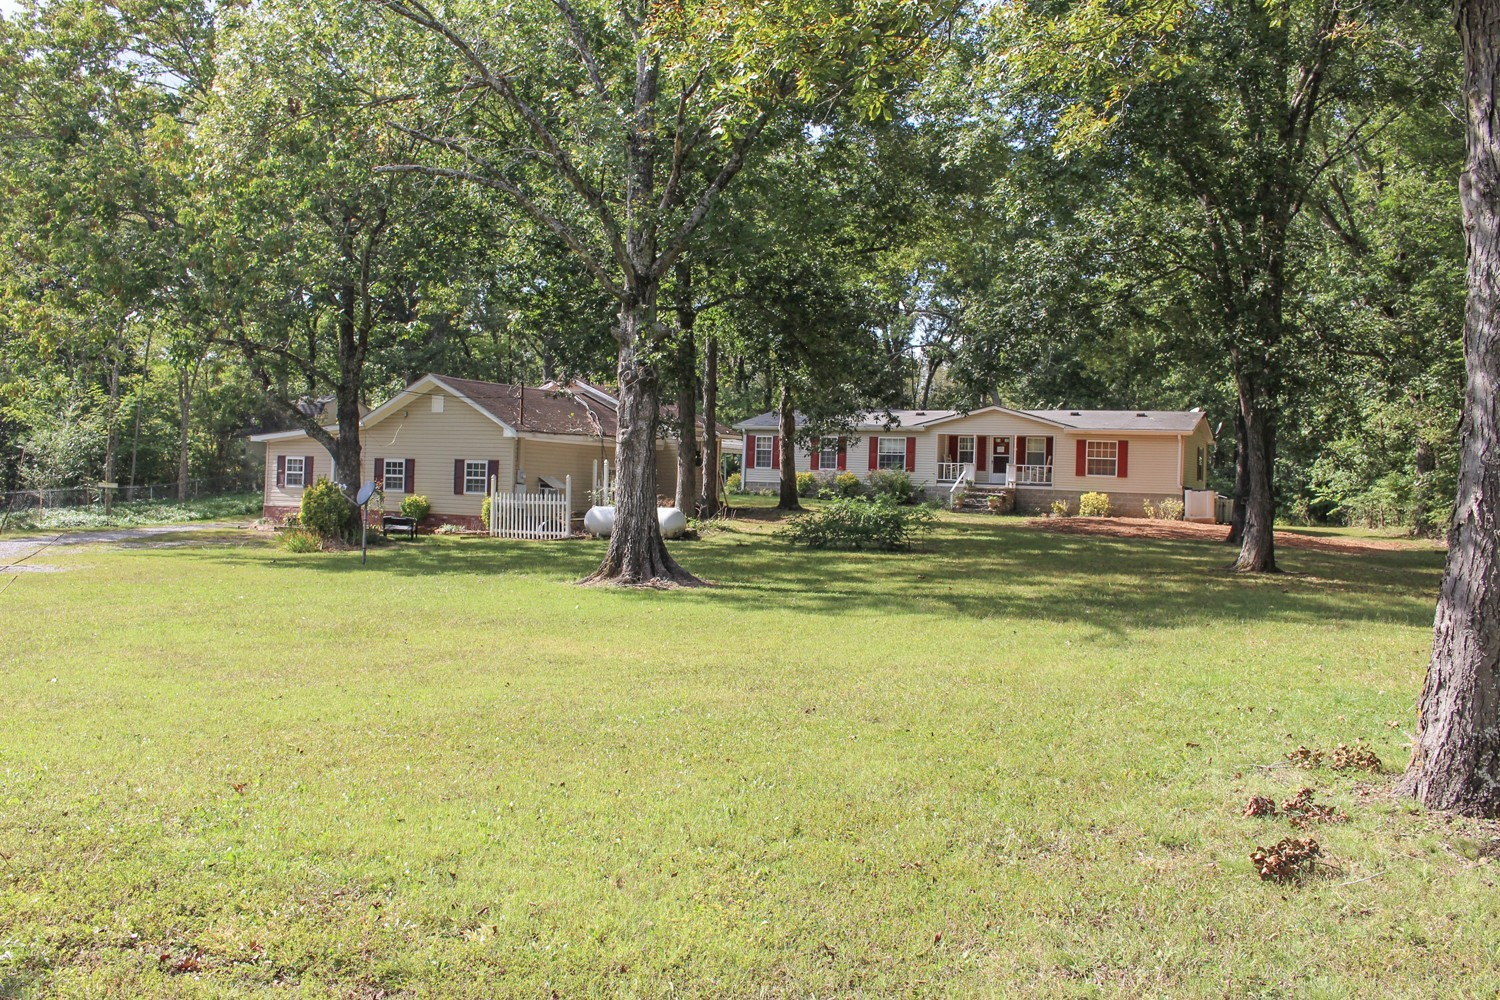 Home to be sold at public auction Oct. 31st, 10:00 AM. 2 Homes 1 Price on 3+/- Acres Home 1 is a 1 bedroom, 1 bath, 1,062+/- sq. ft. vinyl siding home. Home 2 is a clean 3 bedroom, 2 bath, 1994 manufactured home on a permanent foundation with 1,280+/- sq. ft. Home are on approximately 3+/- acres with a barn, large 2 story Dutch barn, 2 carports and a back yard storm shelter. The property is bounded in back by the Corp of Engineers and is very private.